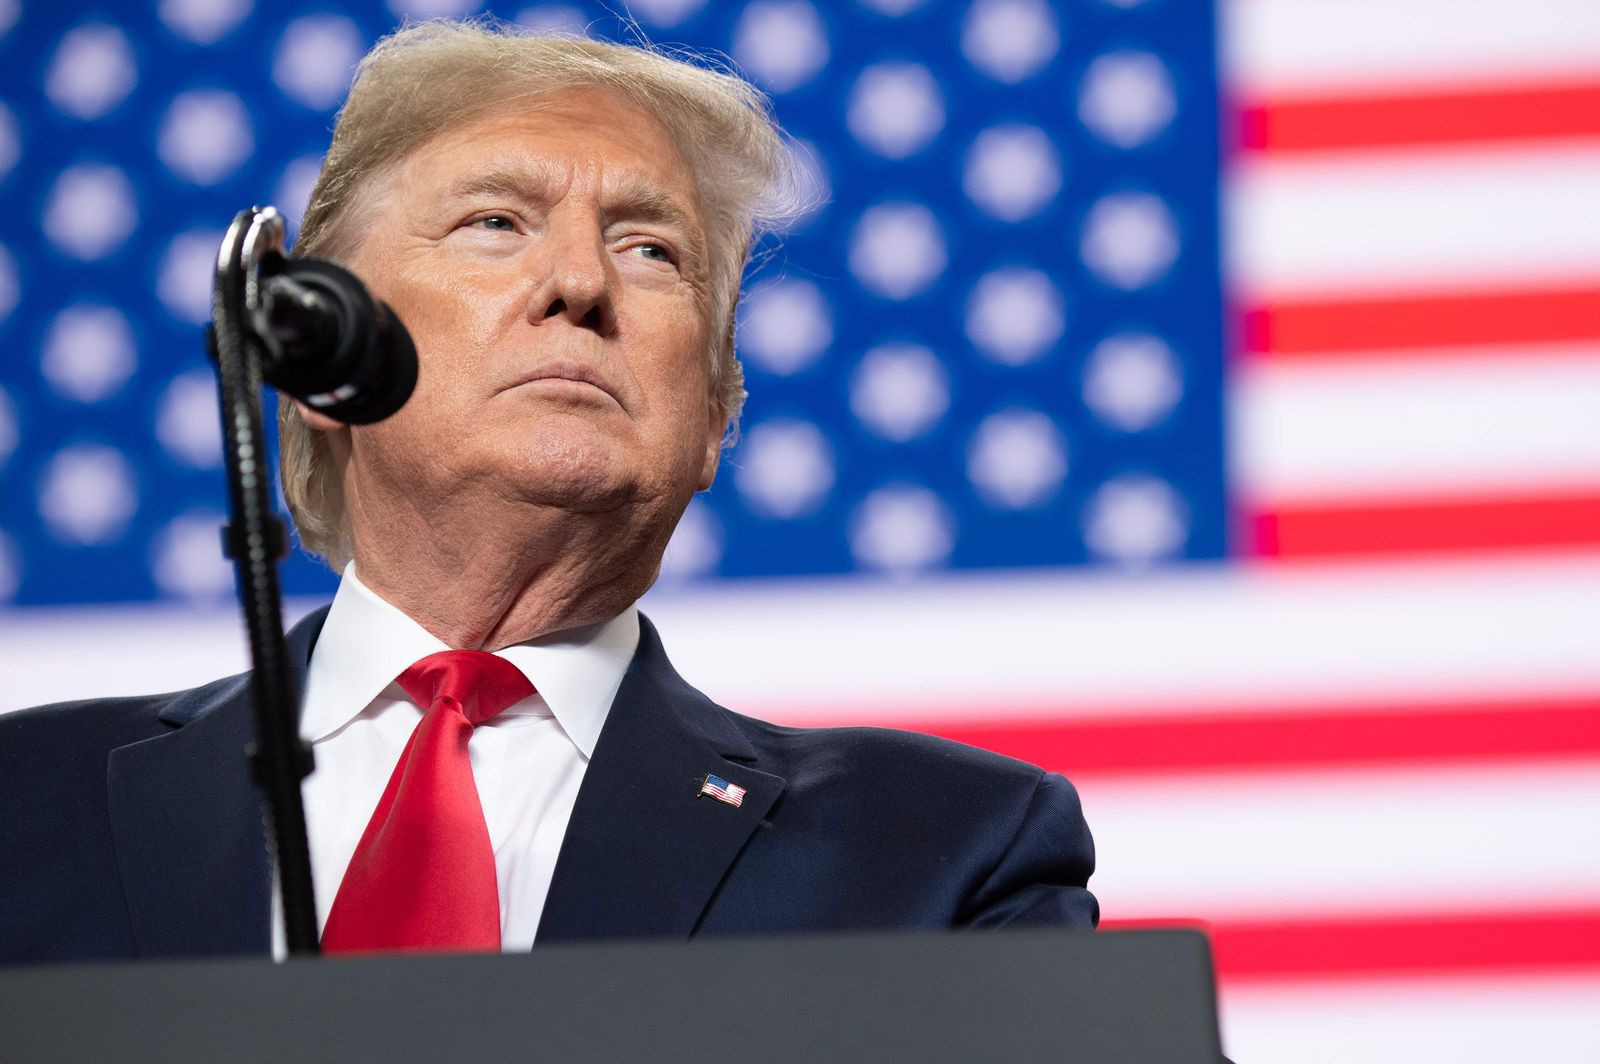 Trump holds 'Keep America Great' campaign rally